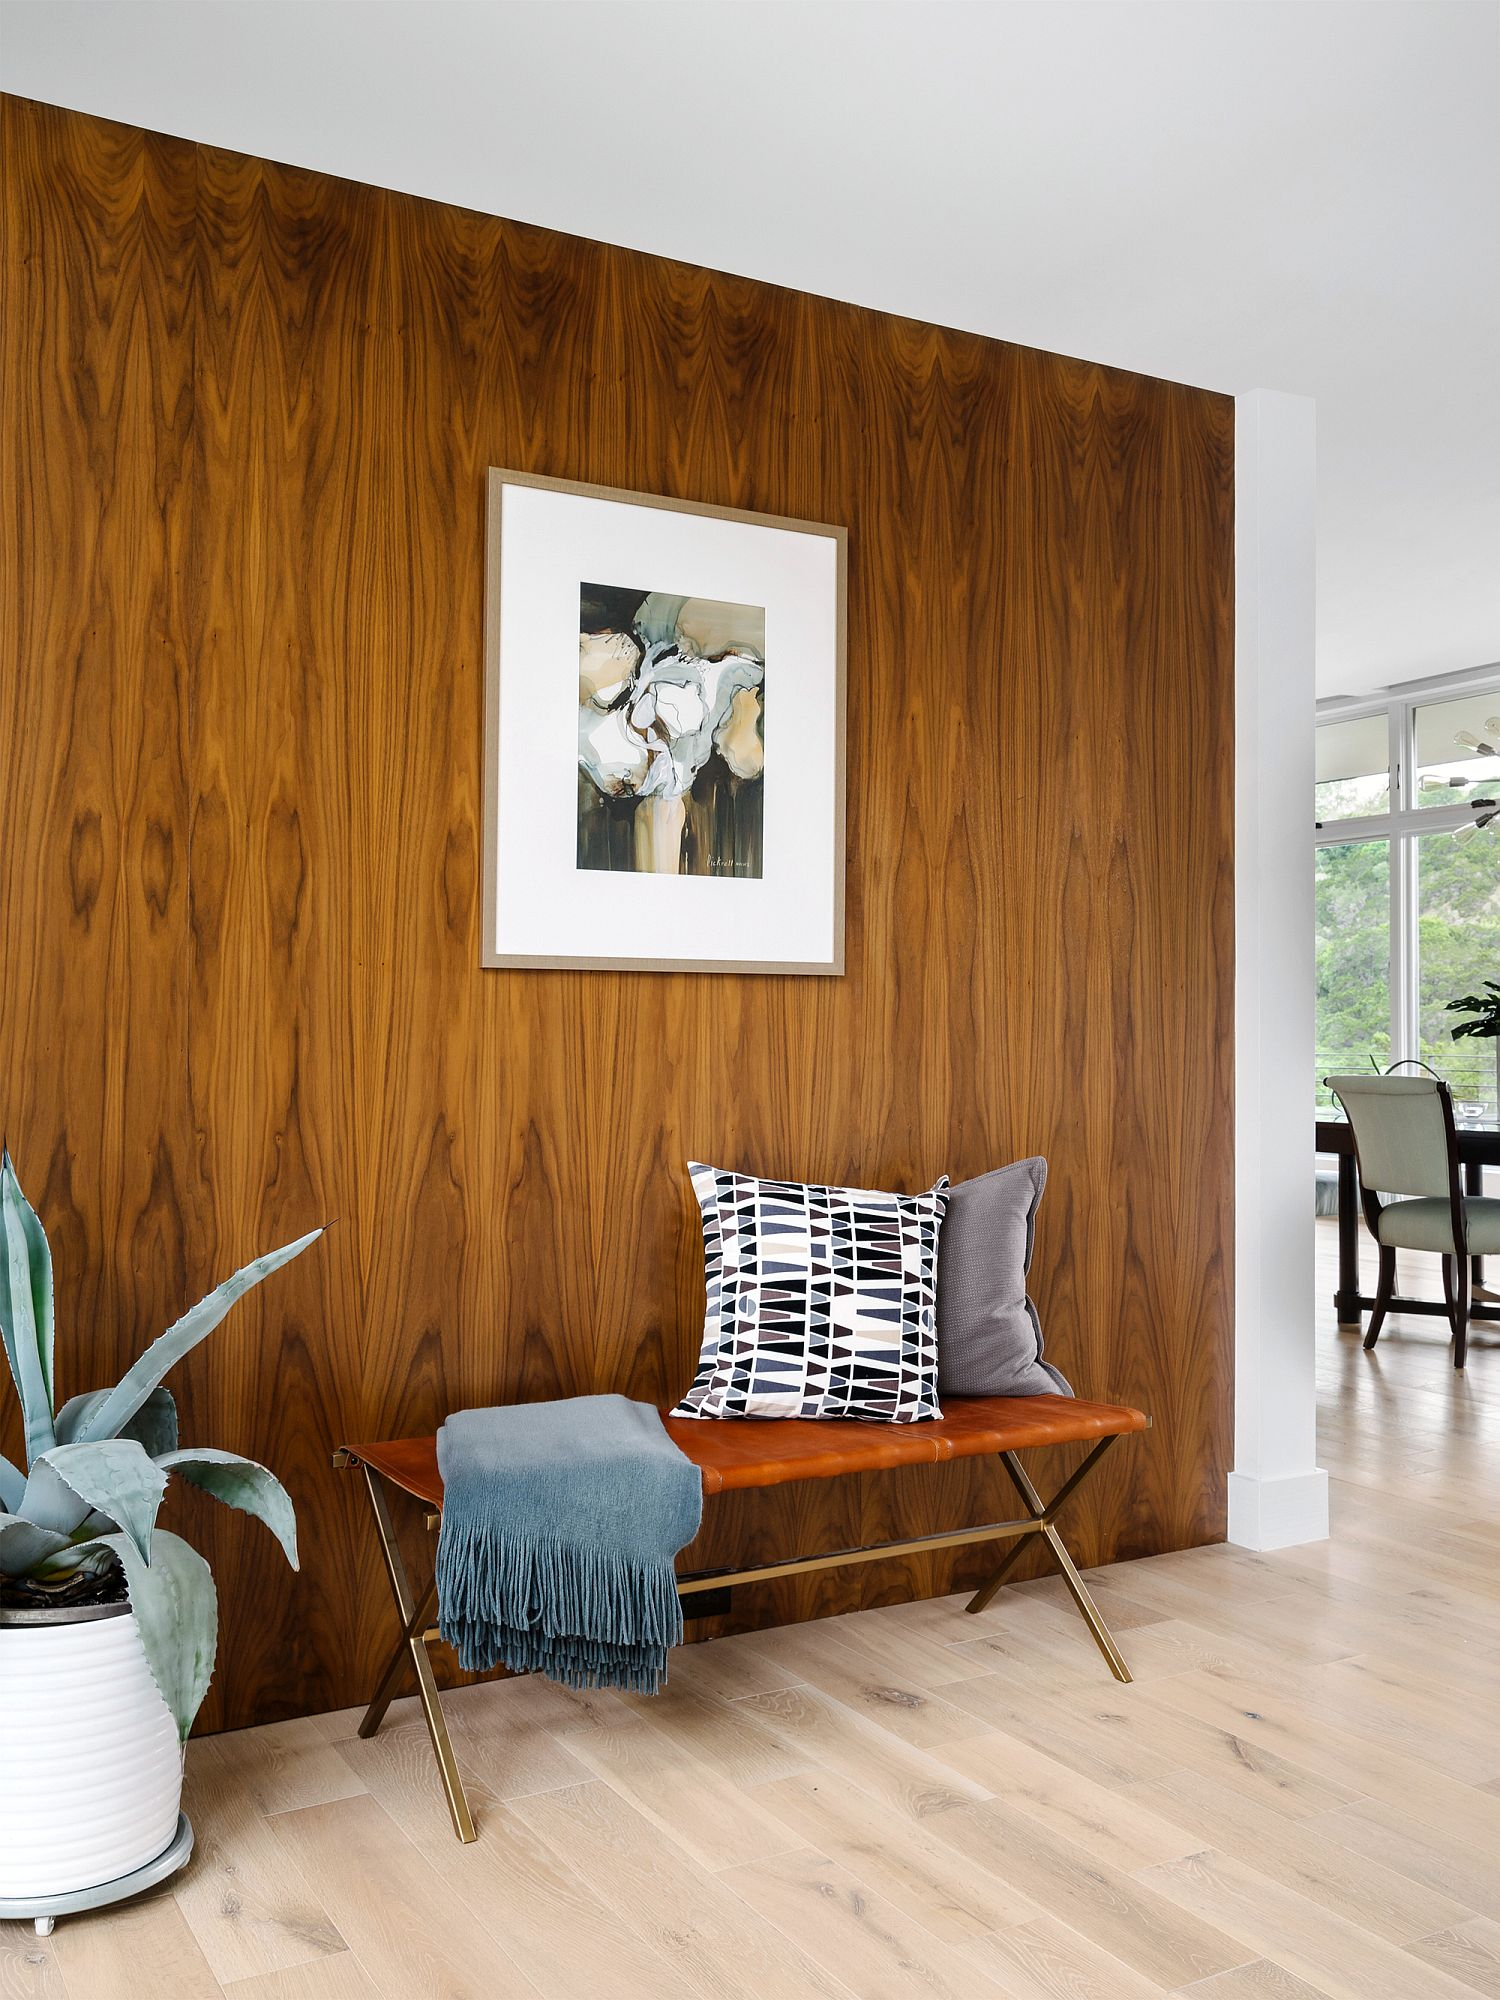 Fabulous wooden accent wall in the living room